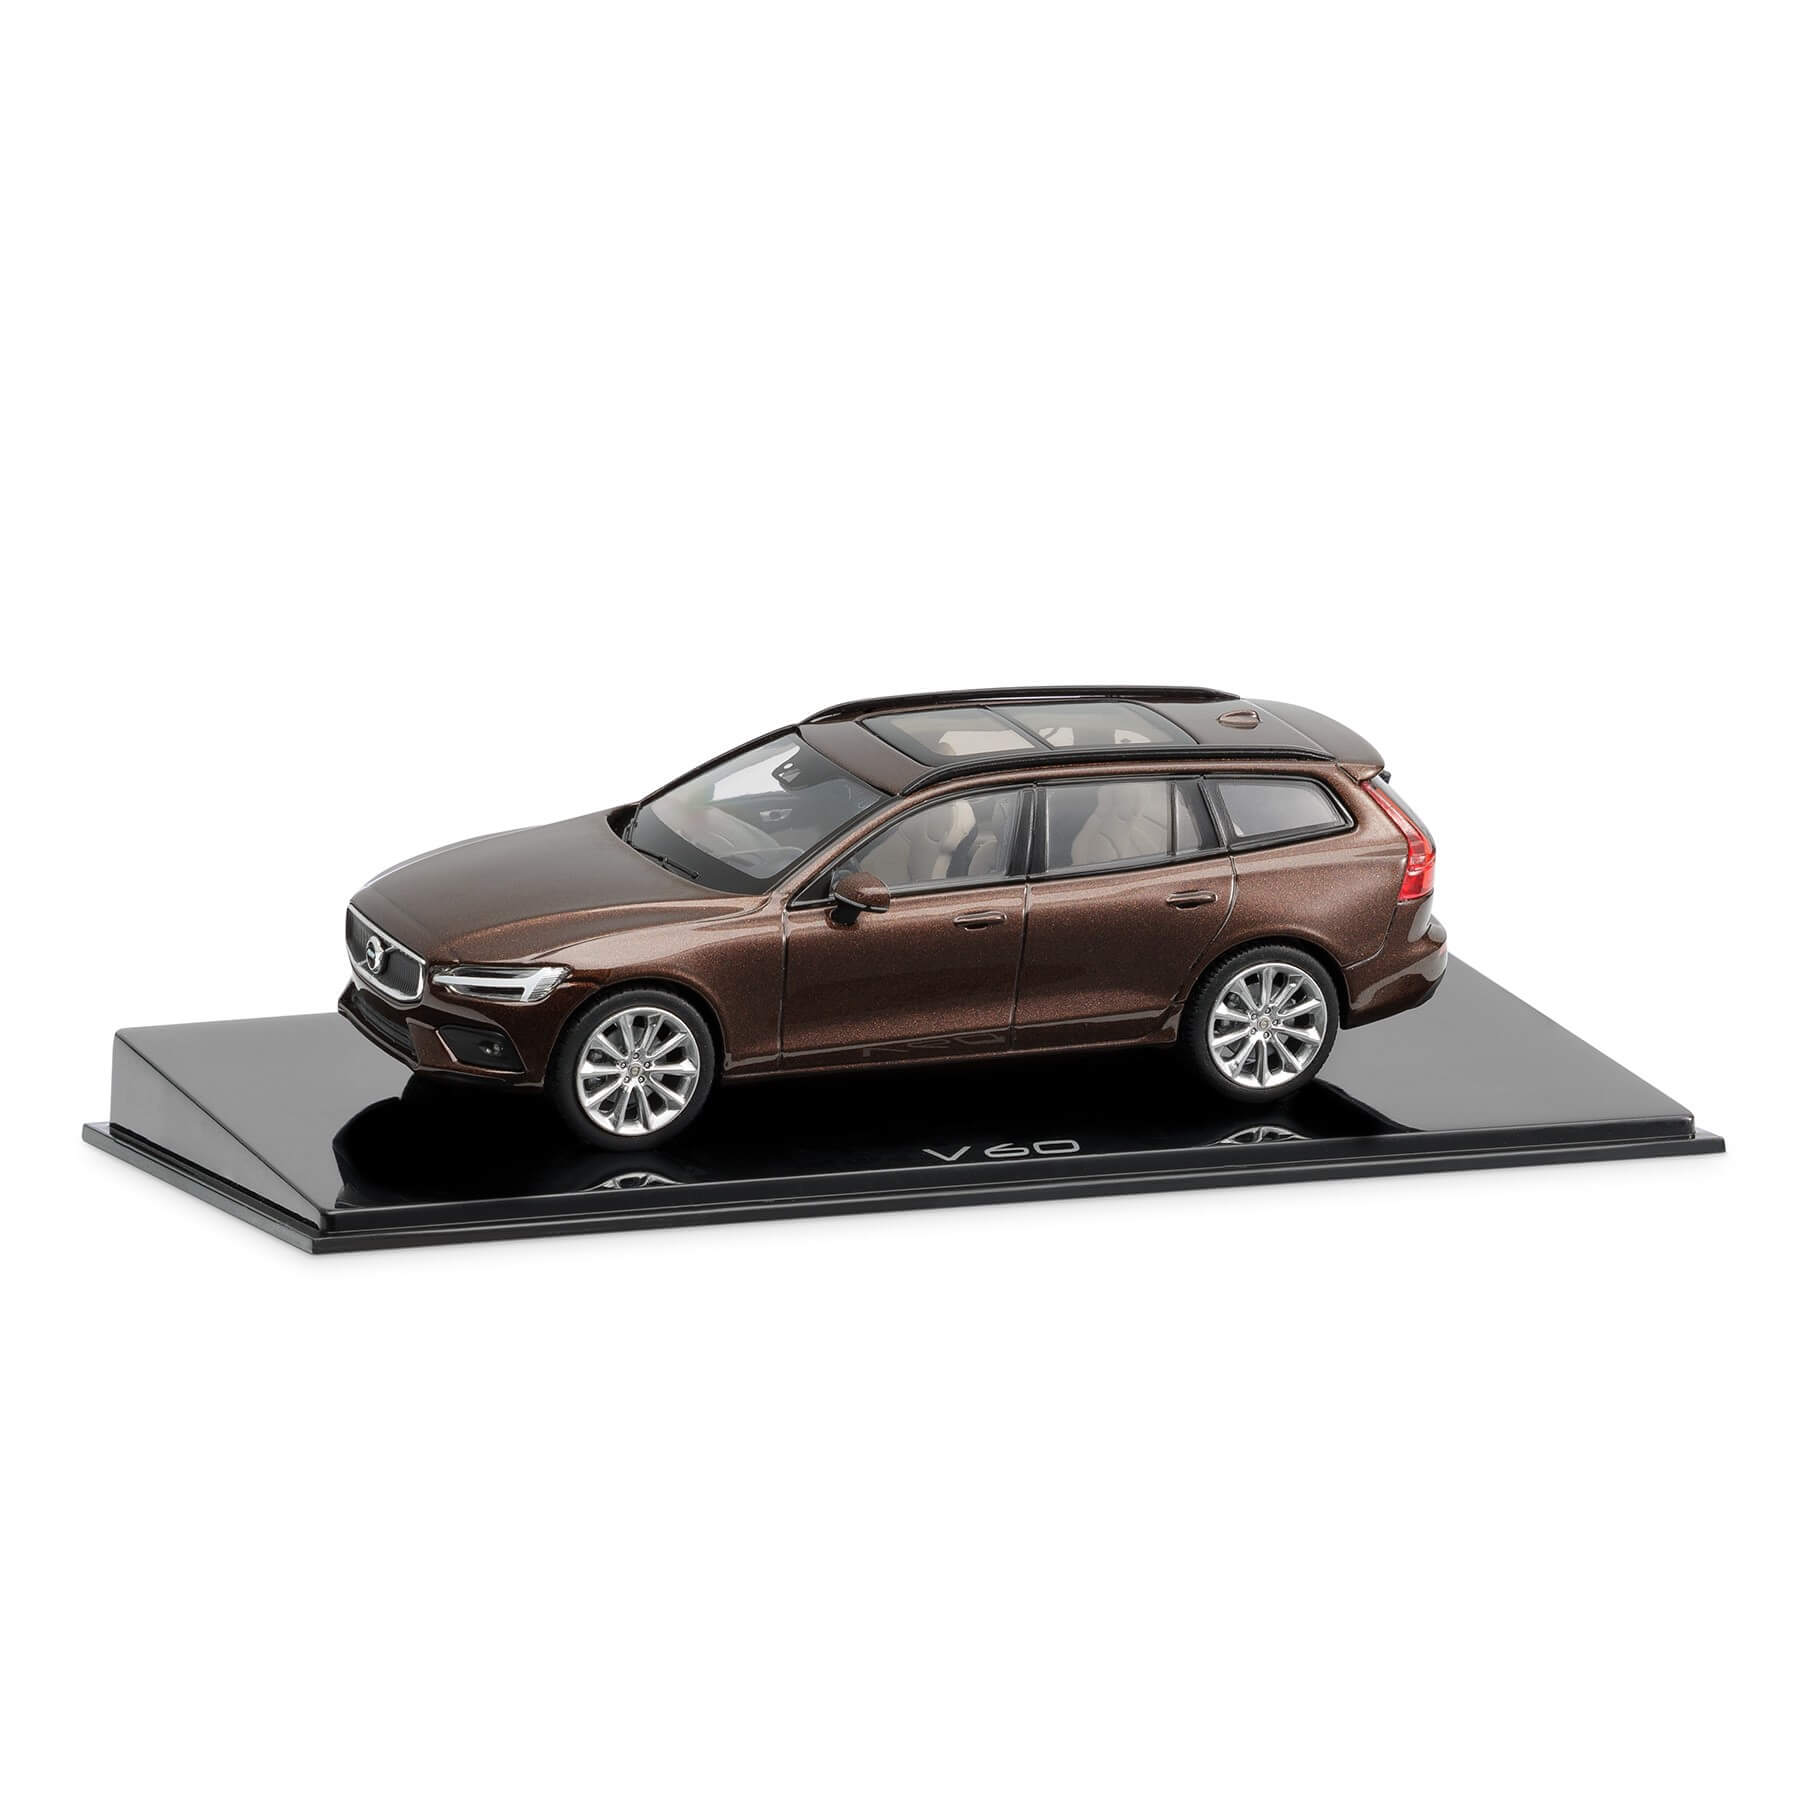 Model V60 v merilu 1:43, barva Maple Brown